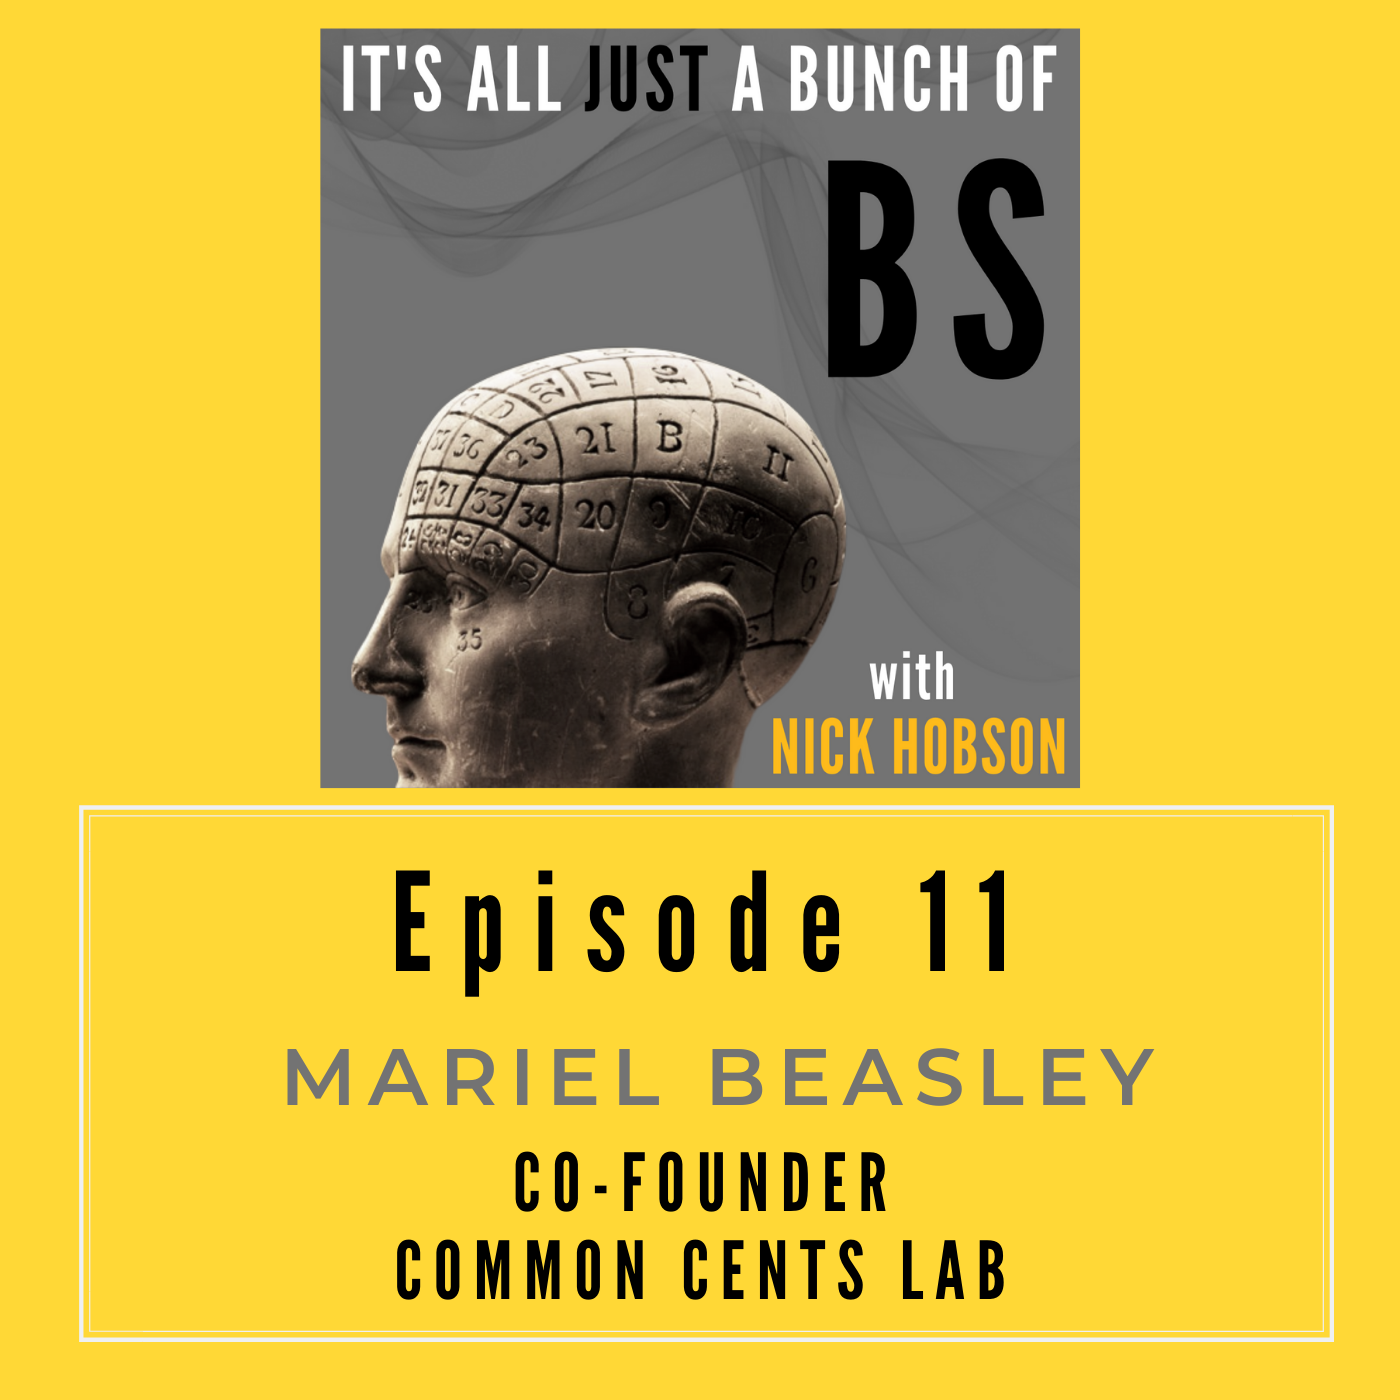 Episode 11 with MARIEL BEASLEY: Helping People Help Themselves, Matters of Libertarian Paternalism